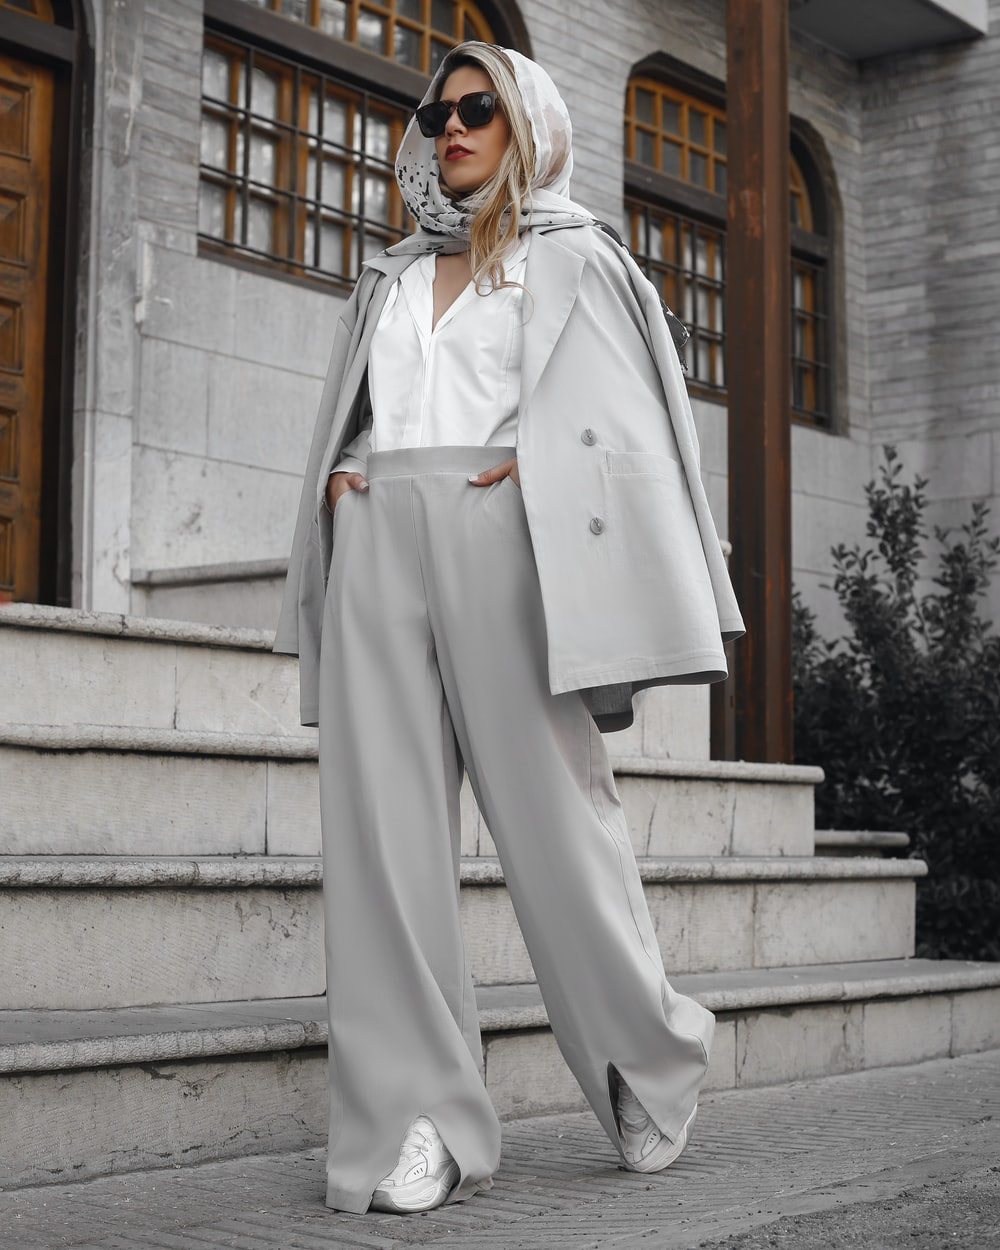 woman in white coat standing on gray concrete stairs